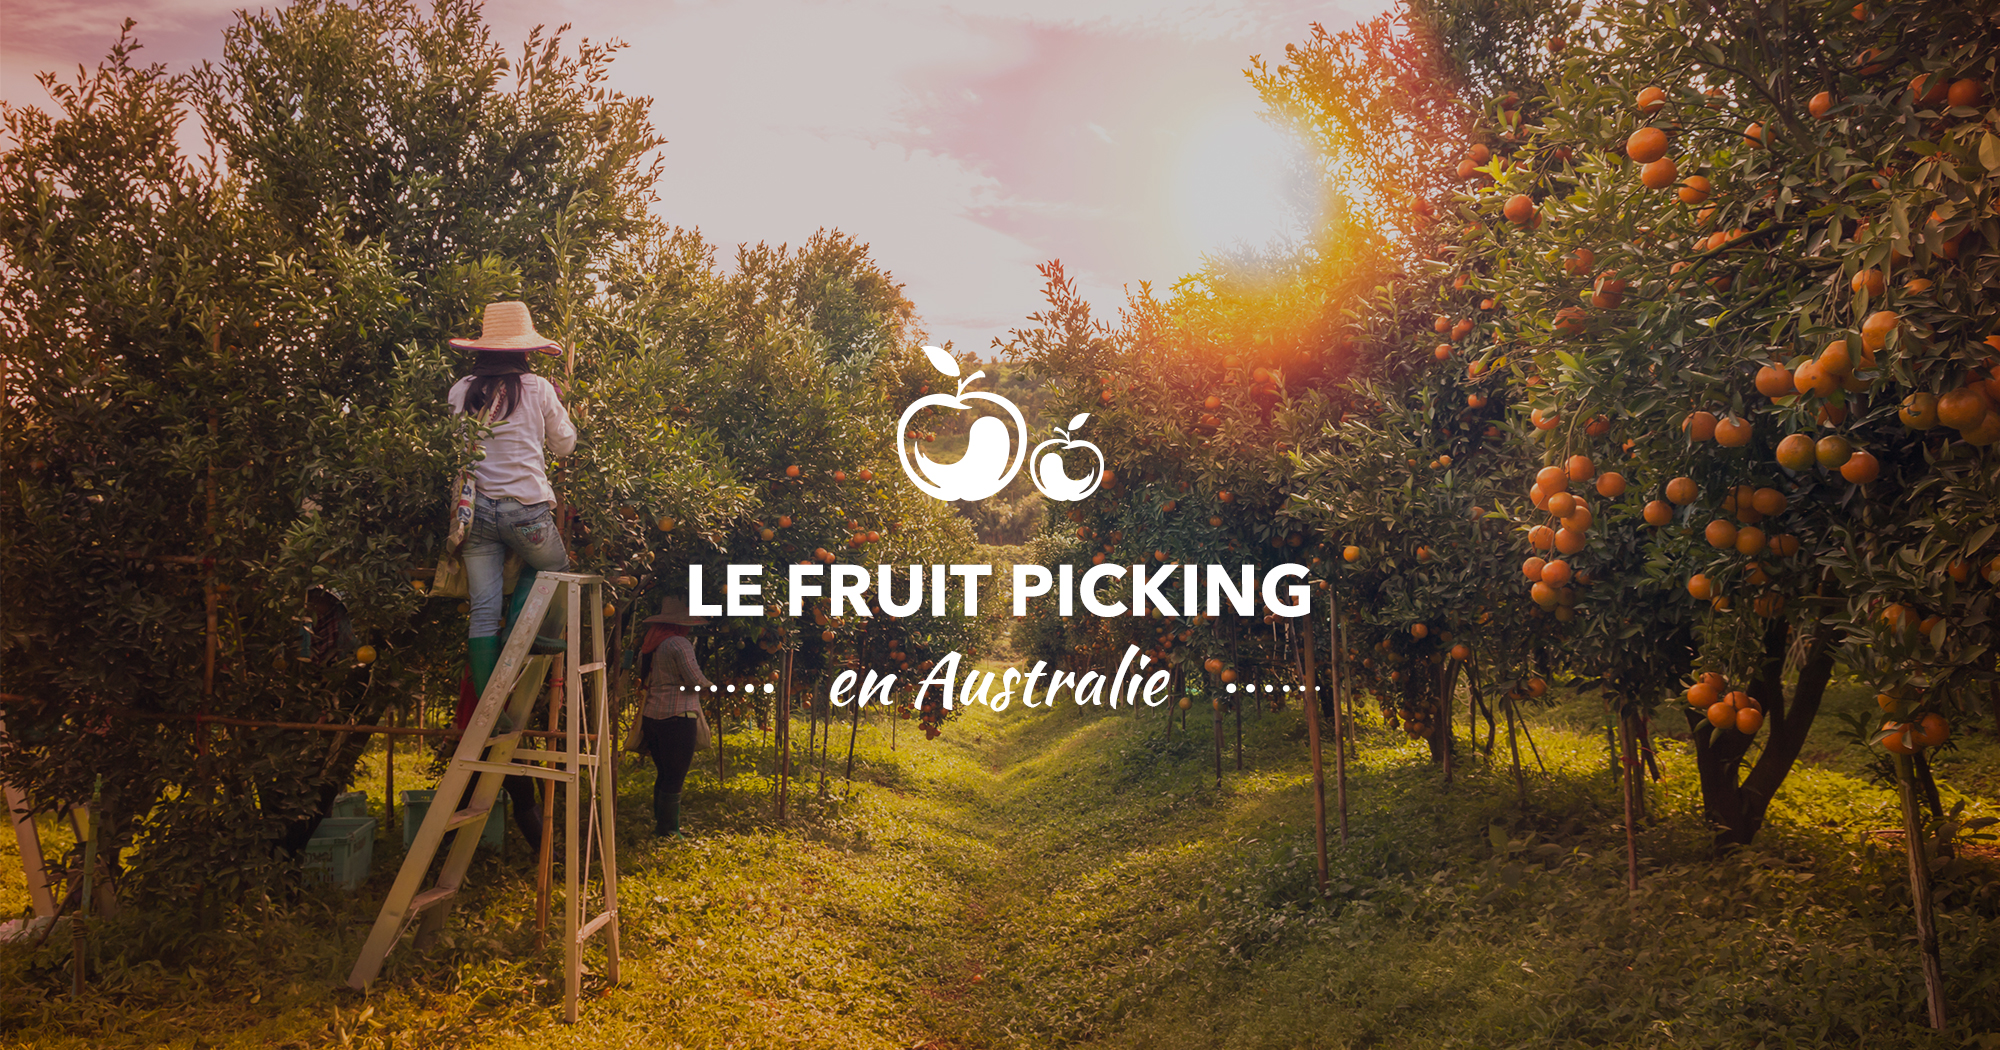 visuels-dossiers-whv-australie-fruit-picking